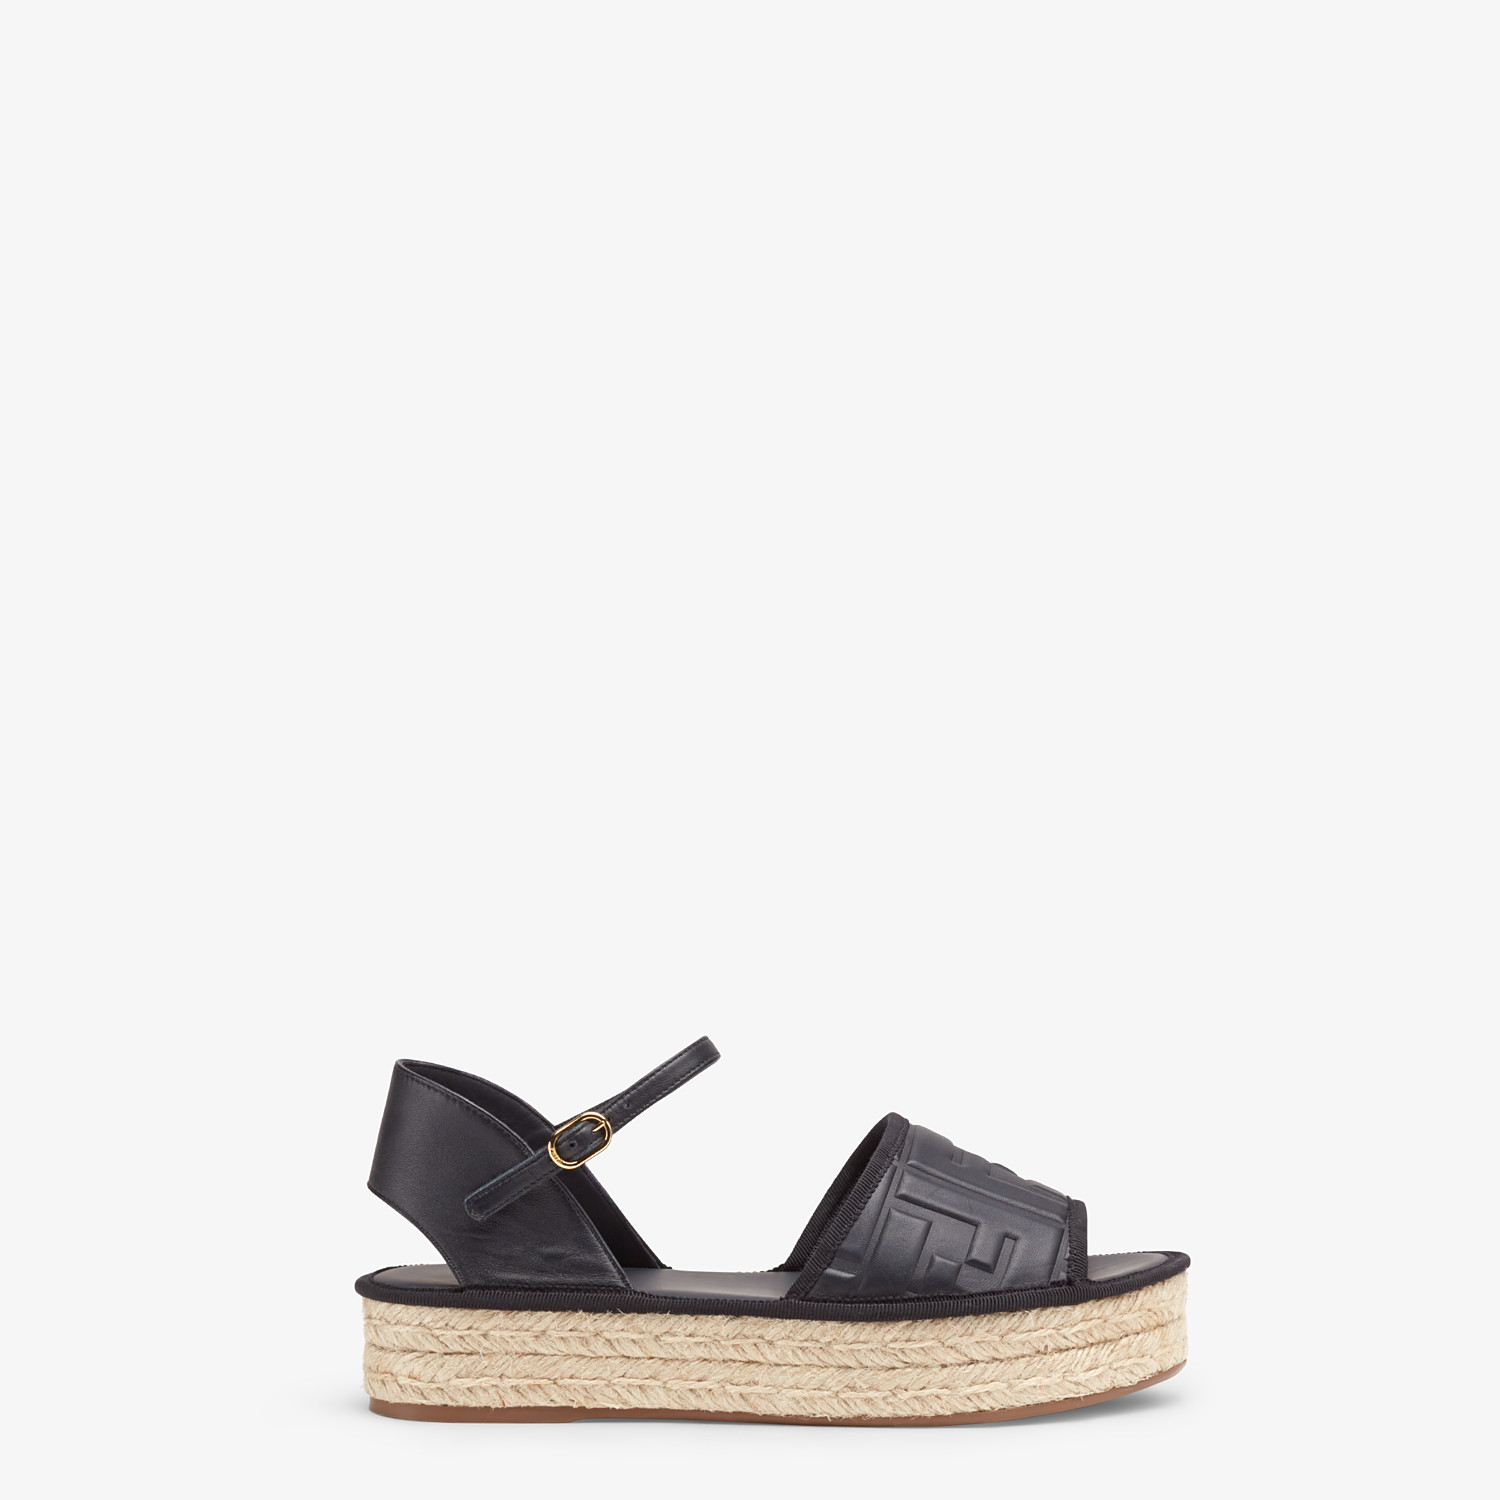 FENDI ESPADRILLES - Black leather flatform espadrilles - view 1 detail